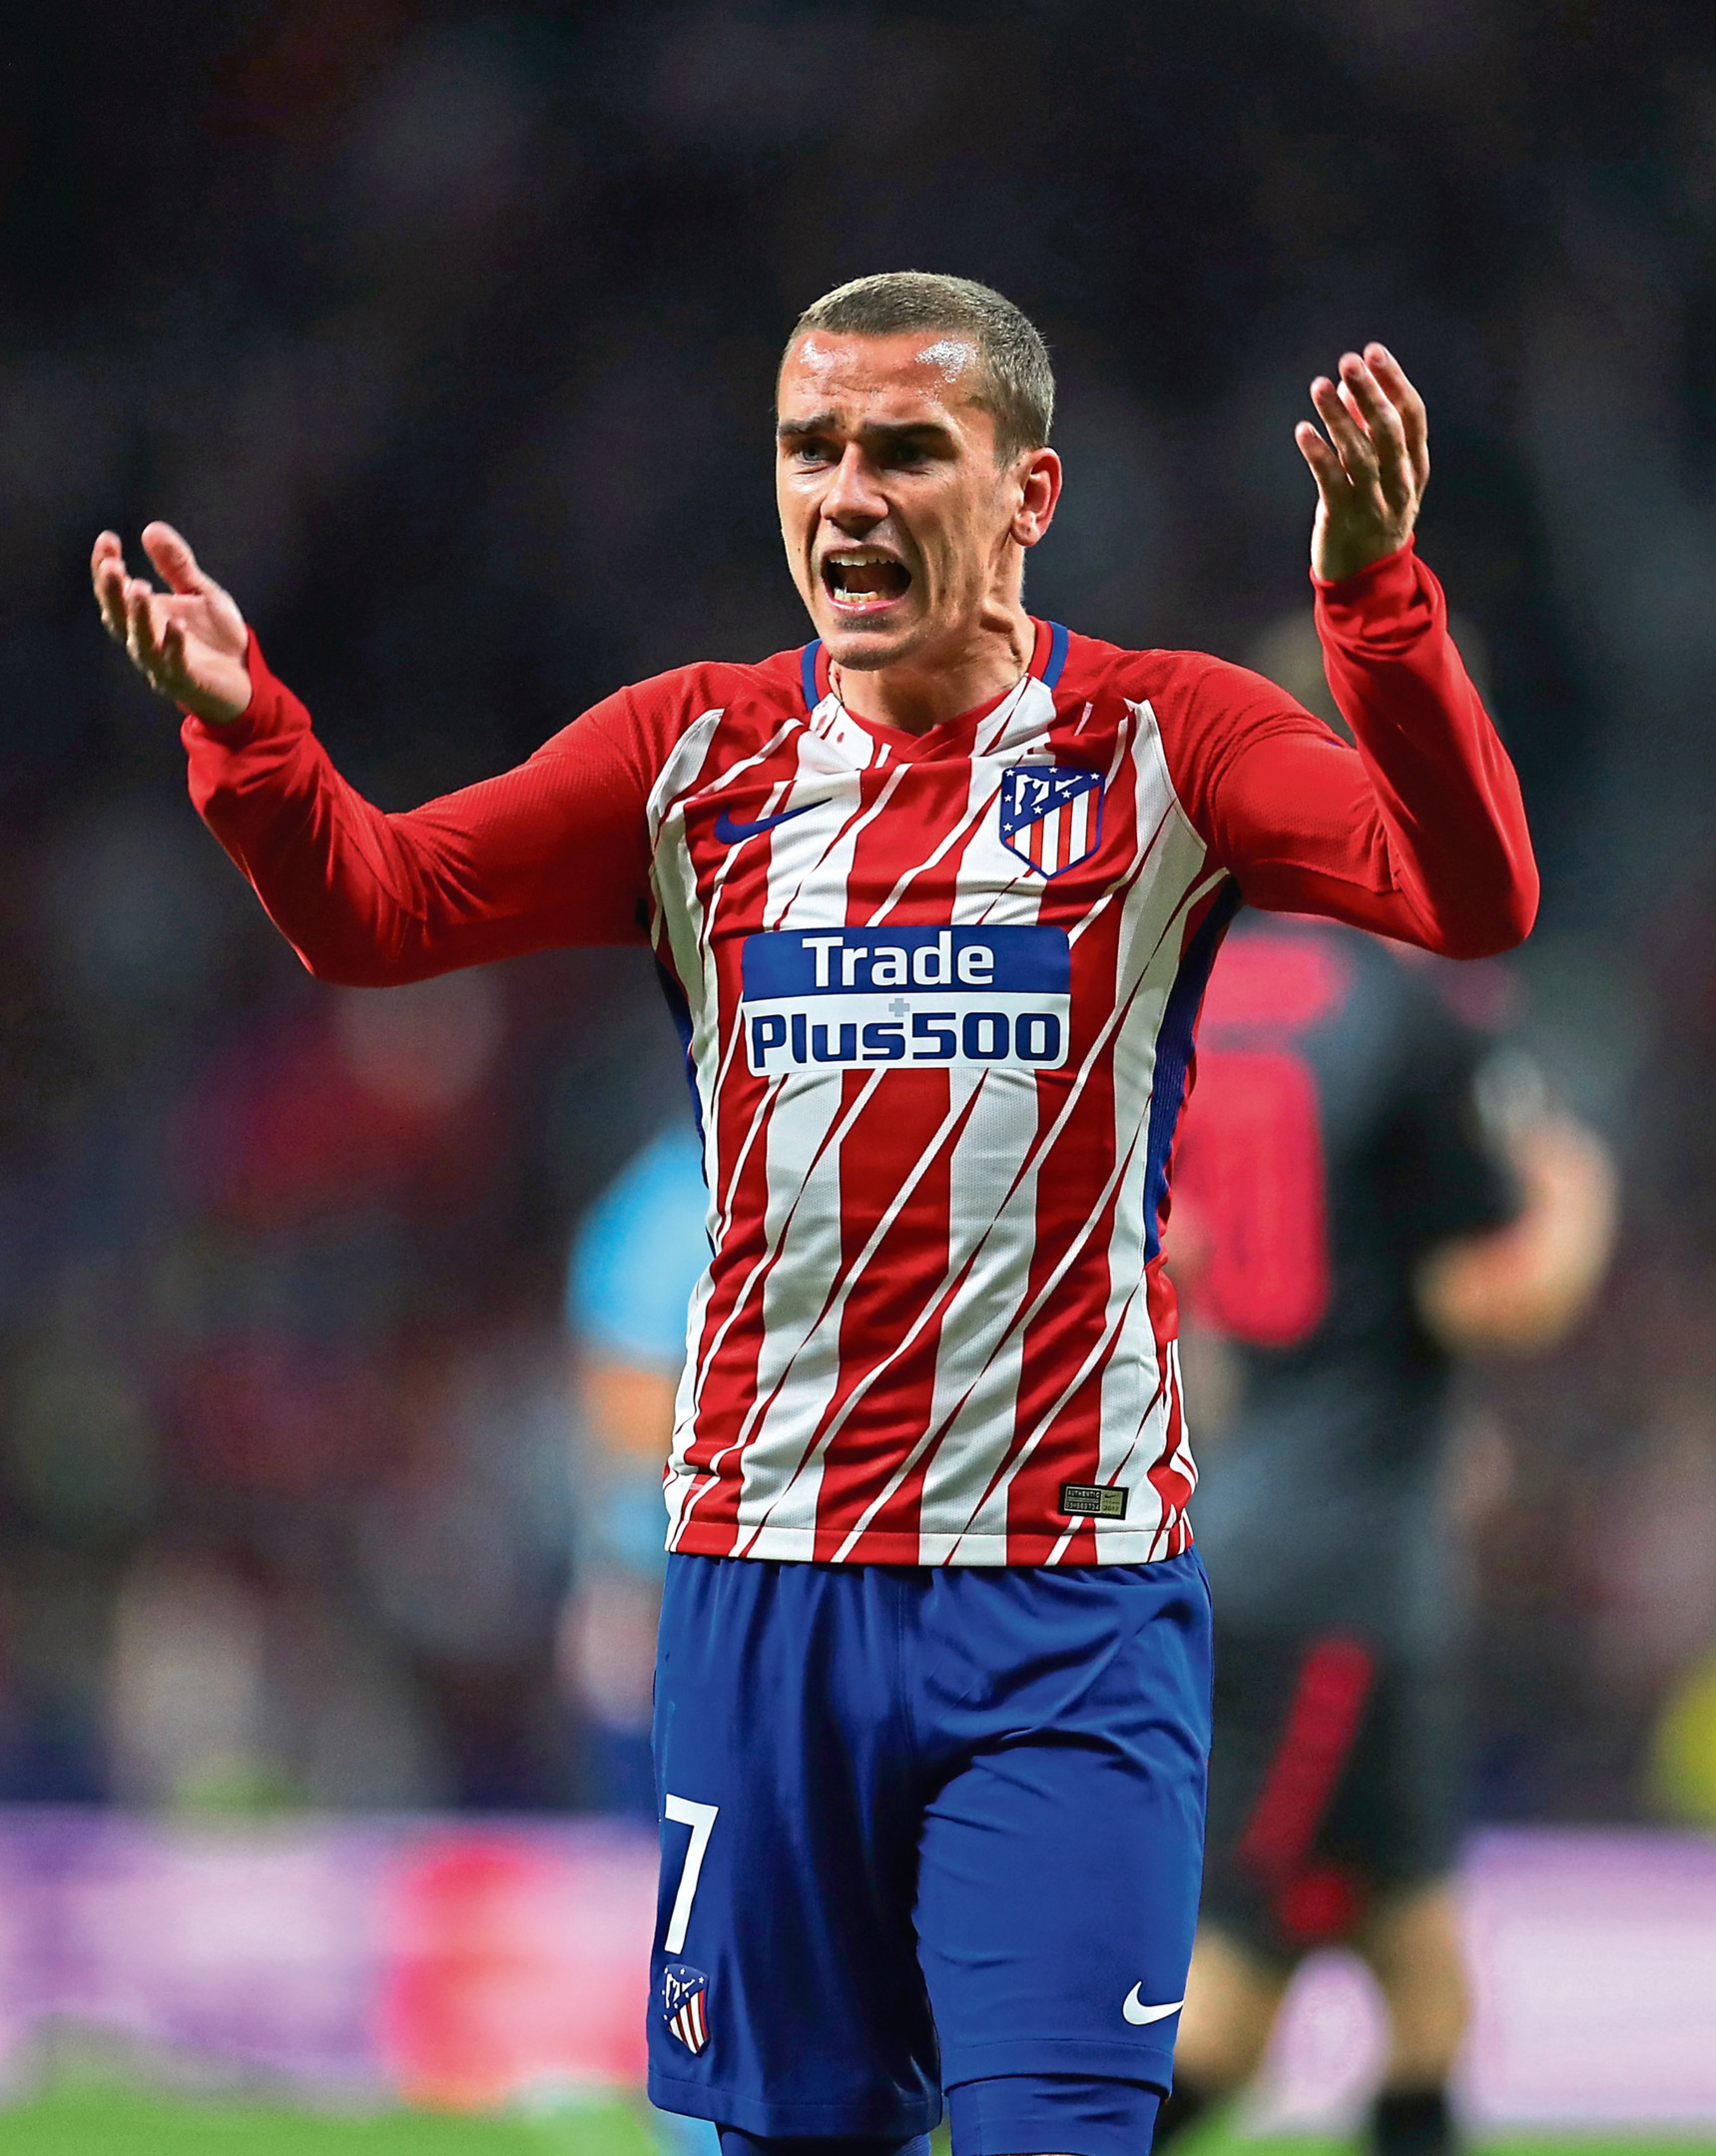 MADRID, SPAIN - MAY 03: Antoine Griezmann of Atletico Madrid during the UEFA Europa League Semi Final second leg match between Atletico Madrid  and Arsenal FC at Estadio Wanda Metropolitano on May 3, 2018 in Madrid, Spain. (Photo by Catherine Ivill/Getty Images)